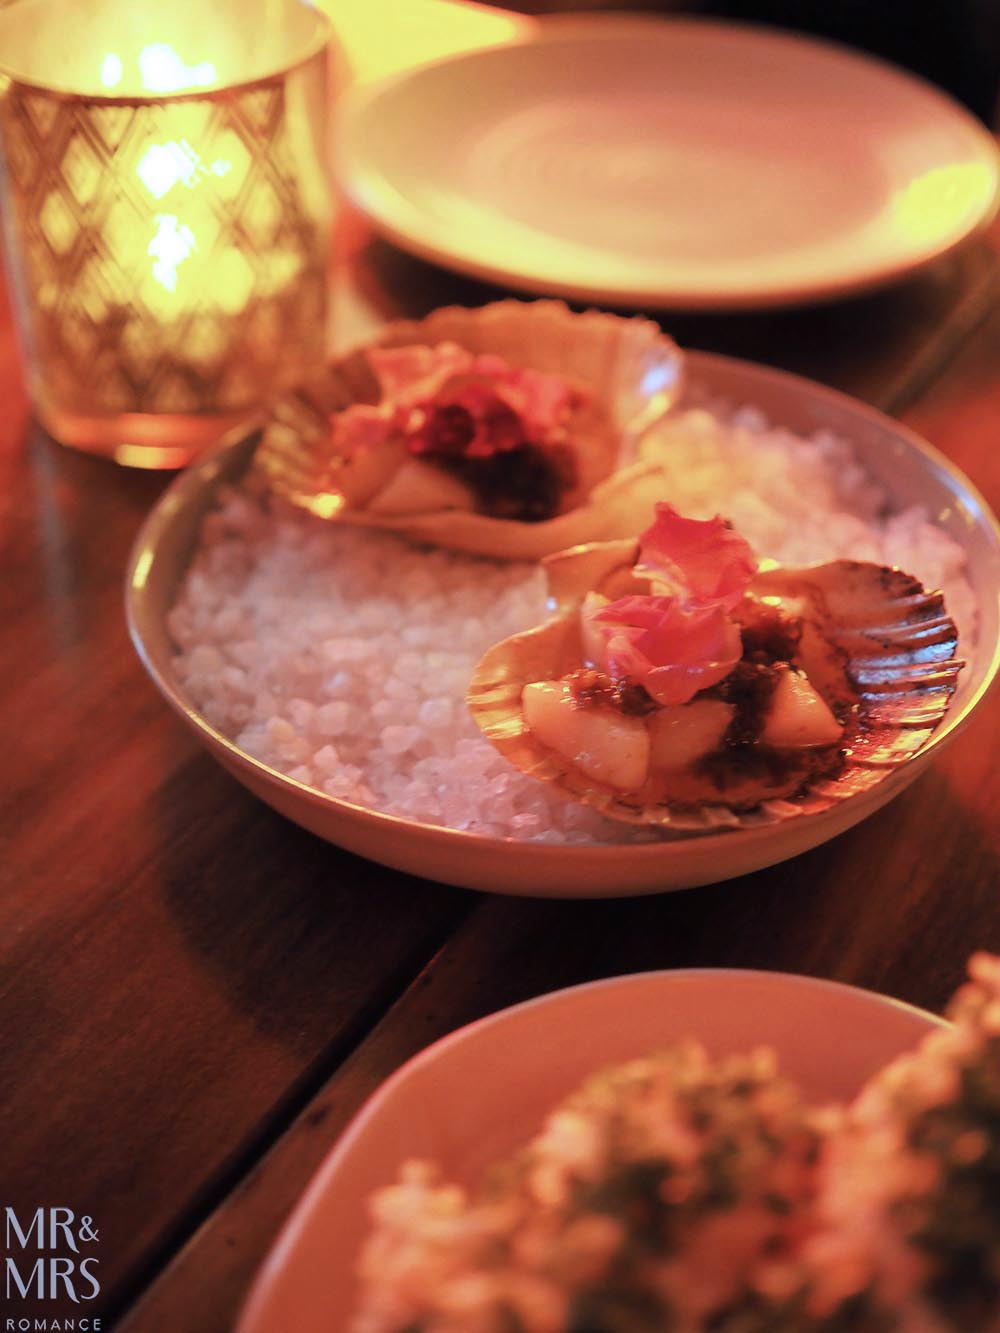 Mr-Mrs-Romance-Weekly-Edition-29-Darlings-Bistro-Rozelle-scallops.jpg